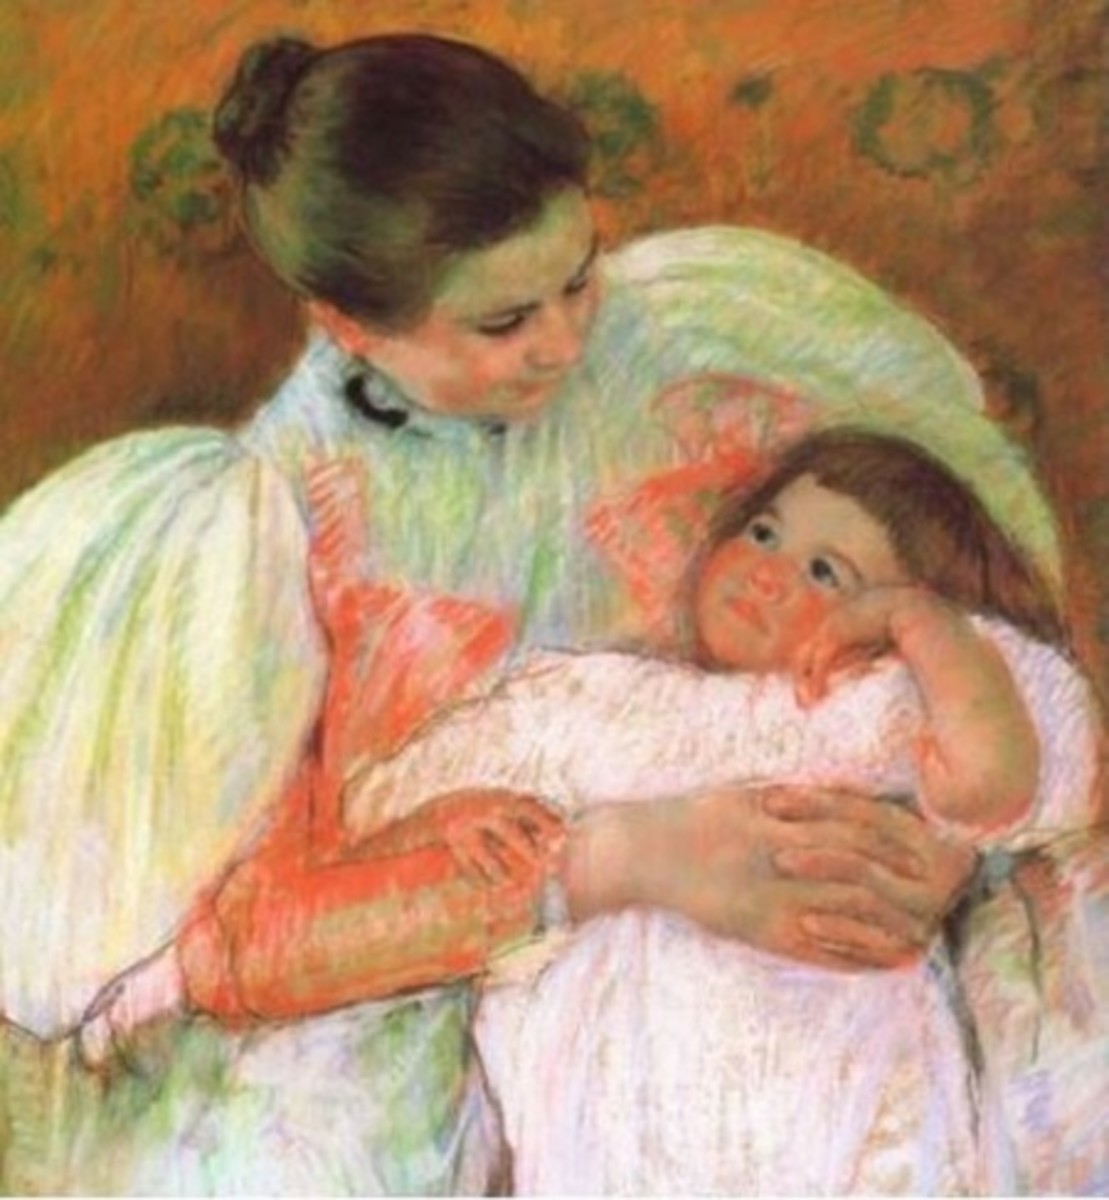 Nanny and child